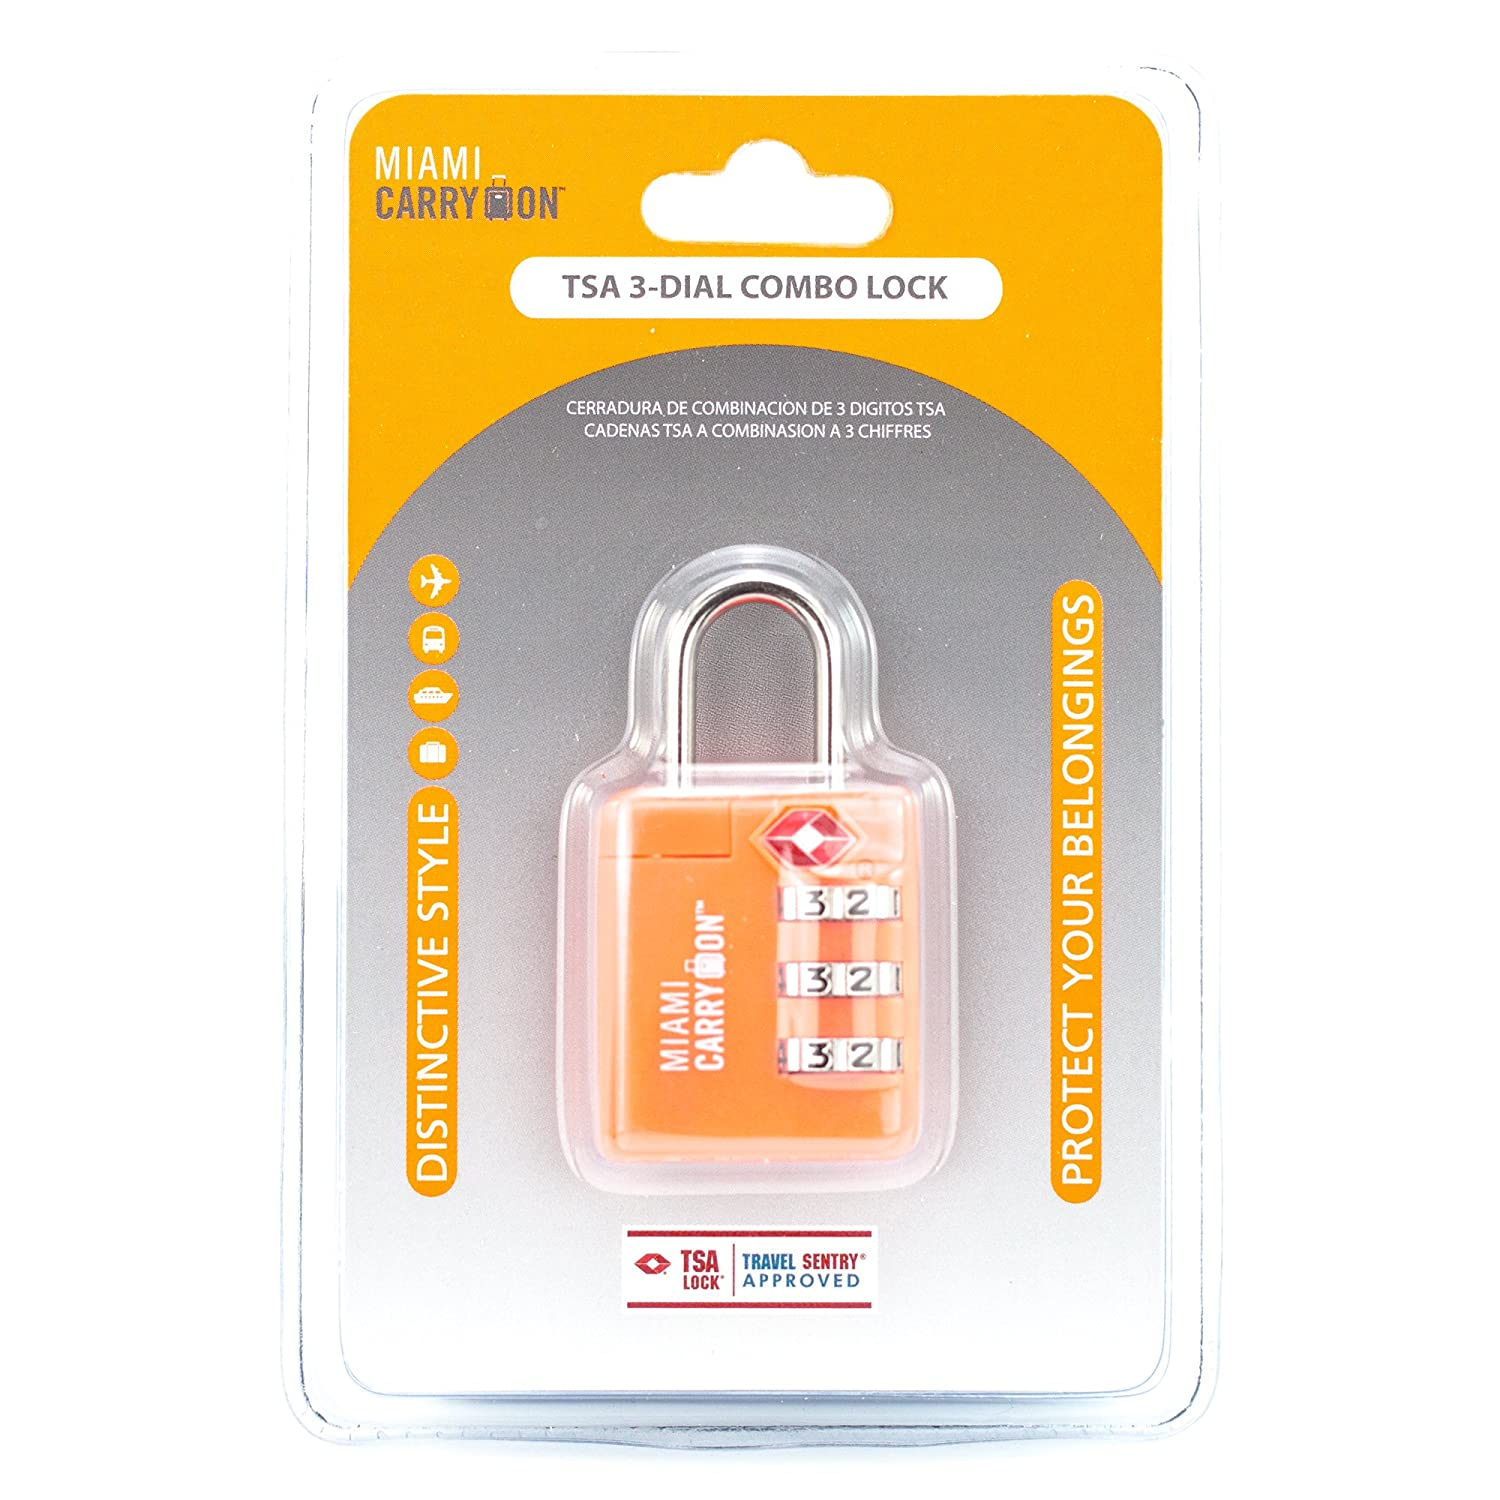 Amazon.com: TSA Combination Padlock - Miami Carry On - Set Your Own Combination TSA Accepted Luggage Lock, 1-3/16 inch Wide - Neon Orange (1 Pack): Clothing